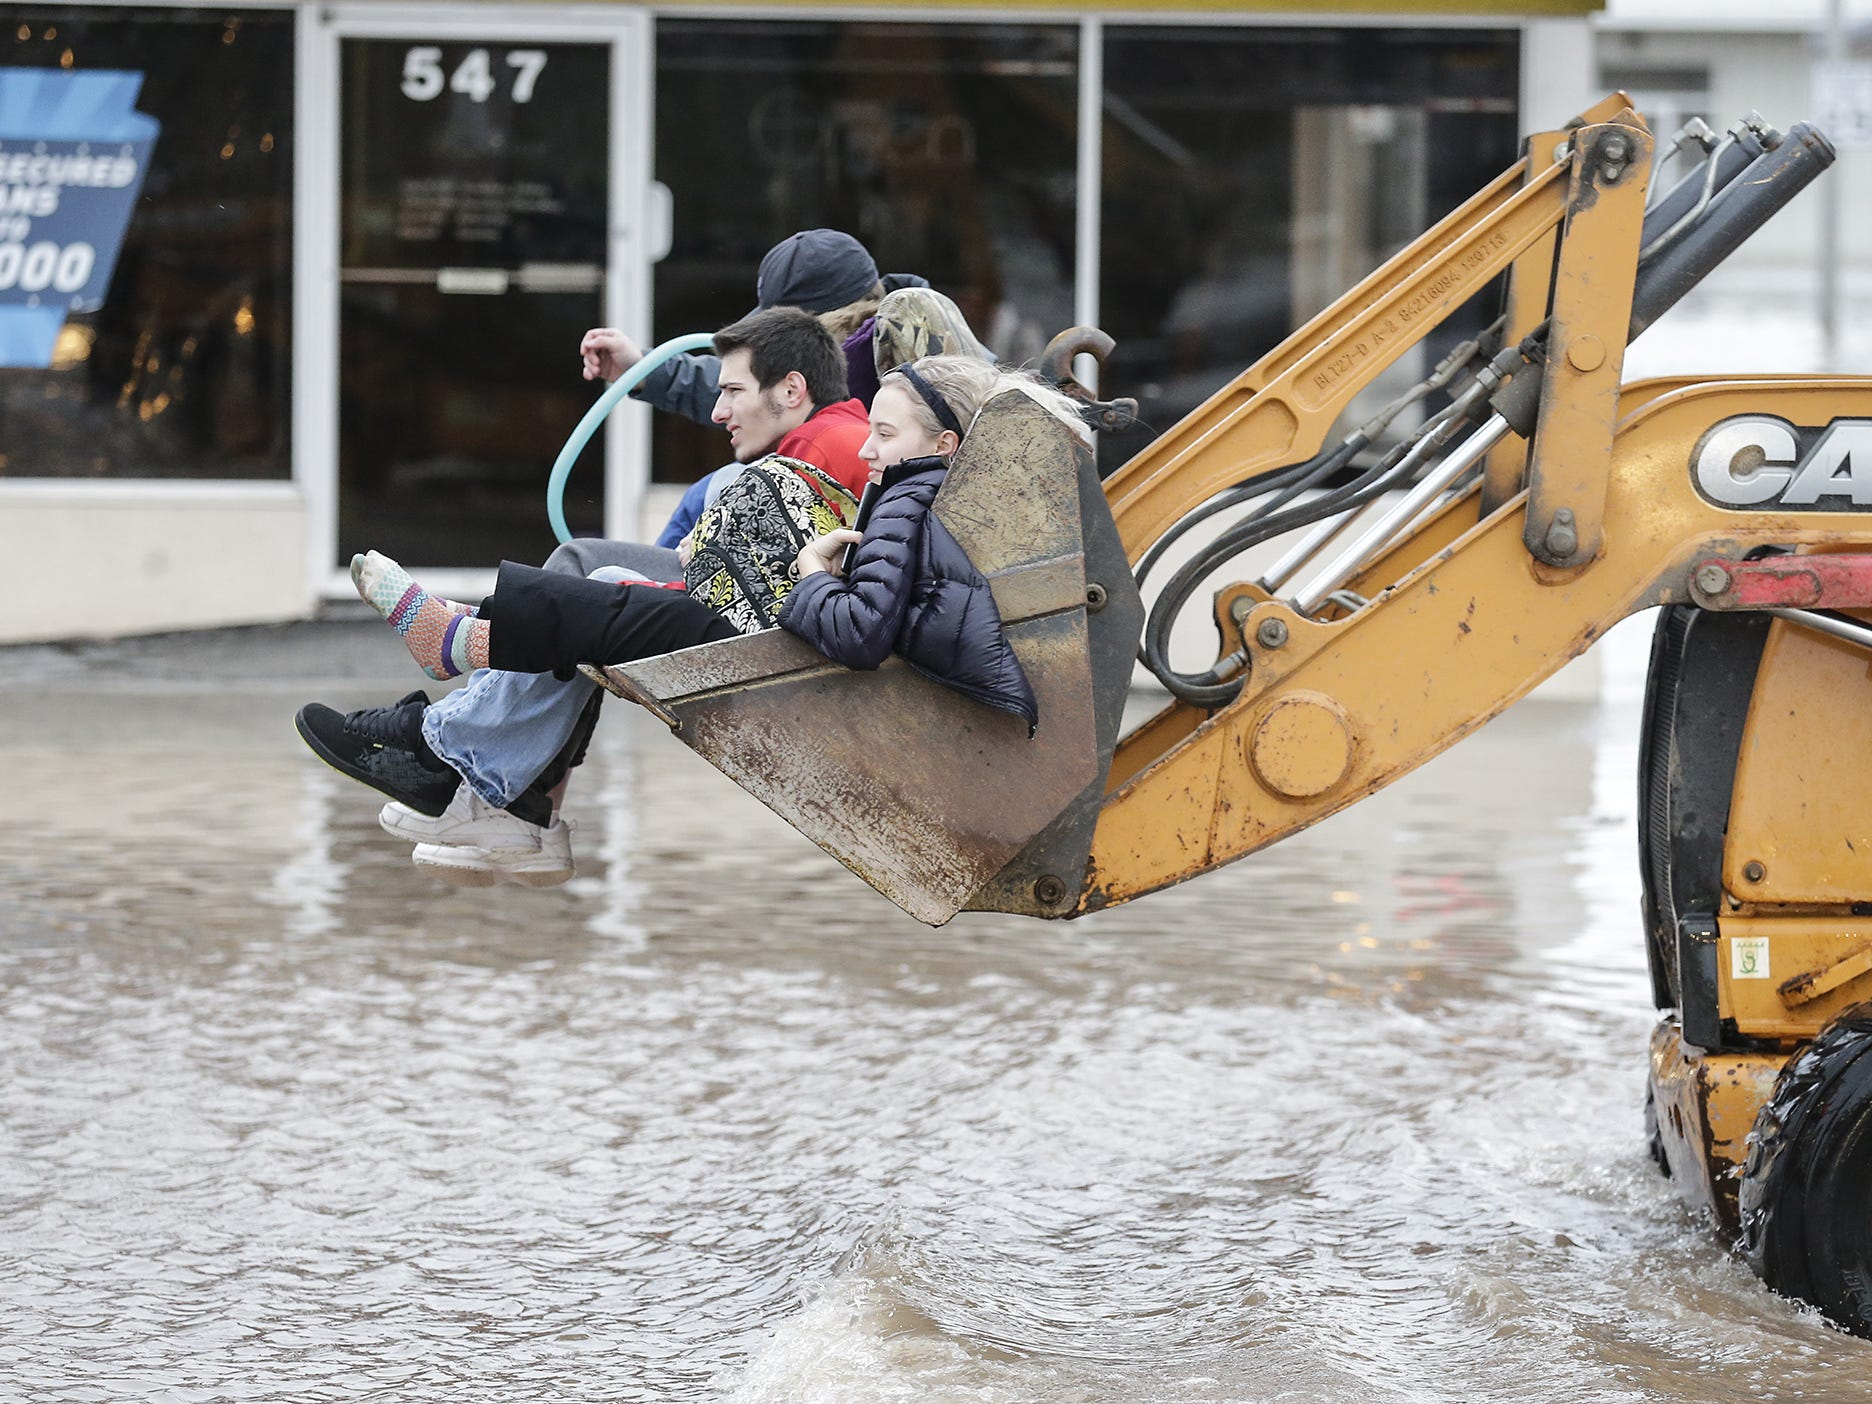 Four people are evacuated from a flooded area Thursday, March 14, 2019 on Johnson Street in Fond du Lac, Wis. Ice jams on the east branch of the Fond du Lac River and heavy rain caused widespread flooding problems in the city. Doug Raflik/USA TODAY NETWORK-Wisconsin